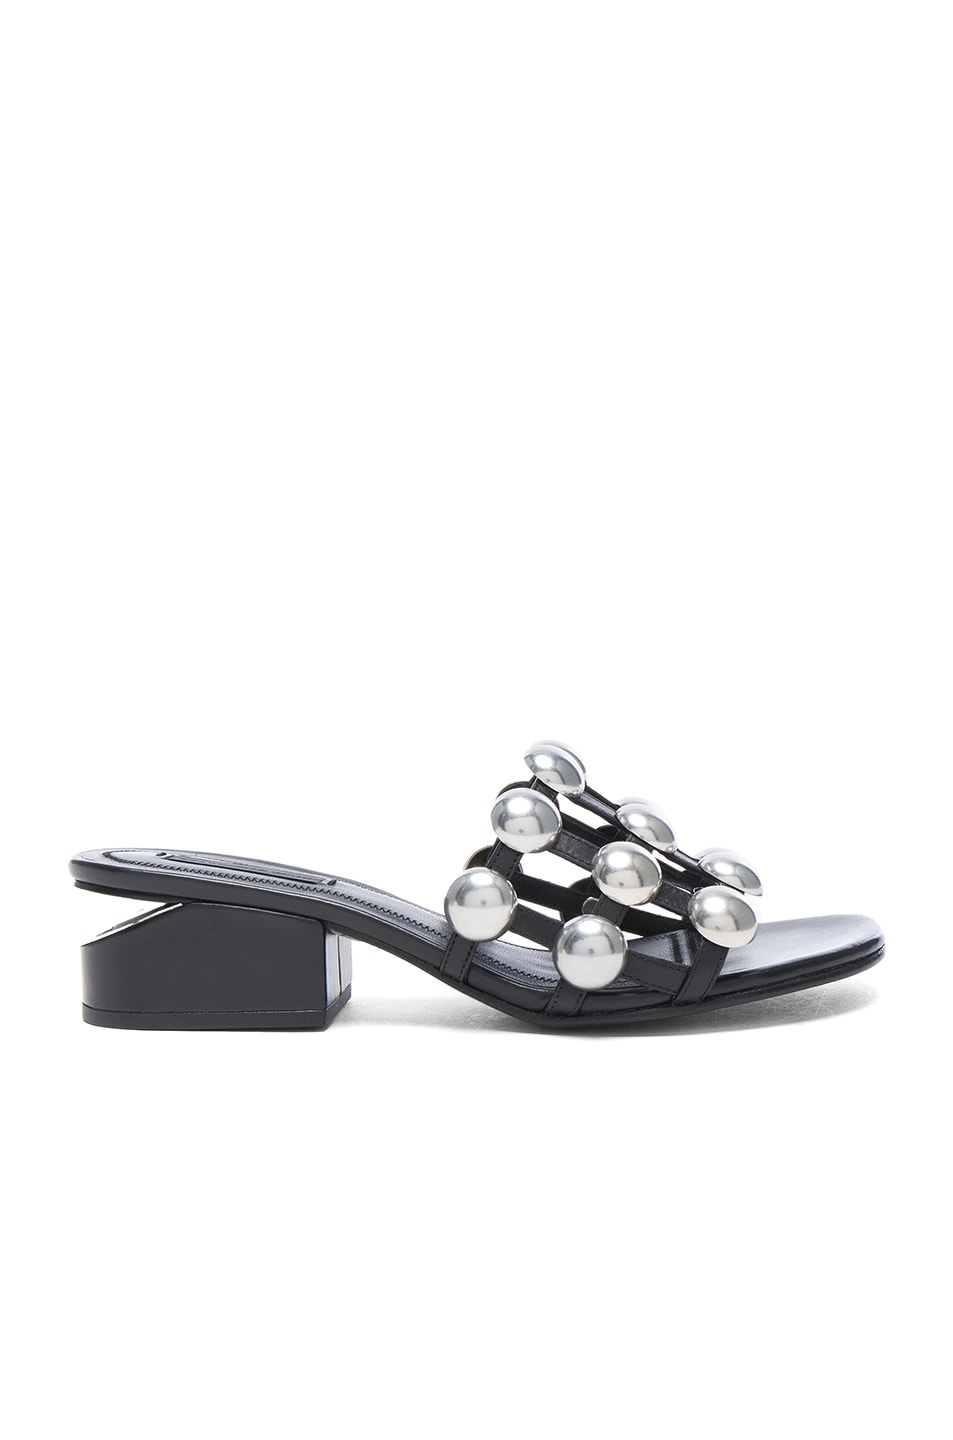 Image 1 of Alexander Wang Dome Stud Leather Lou Slides in Black